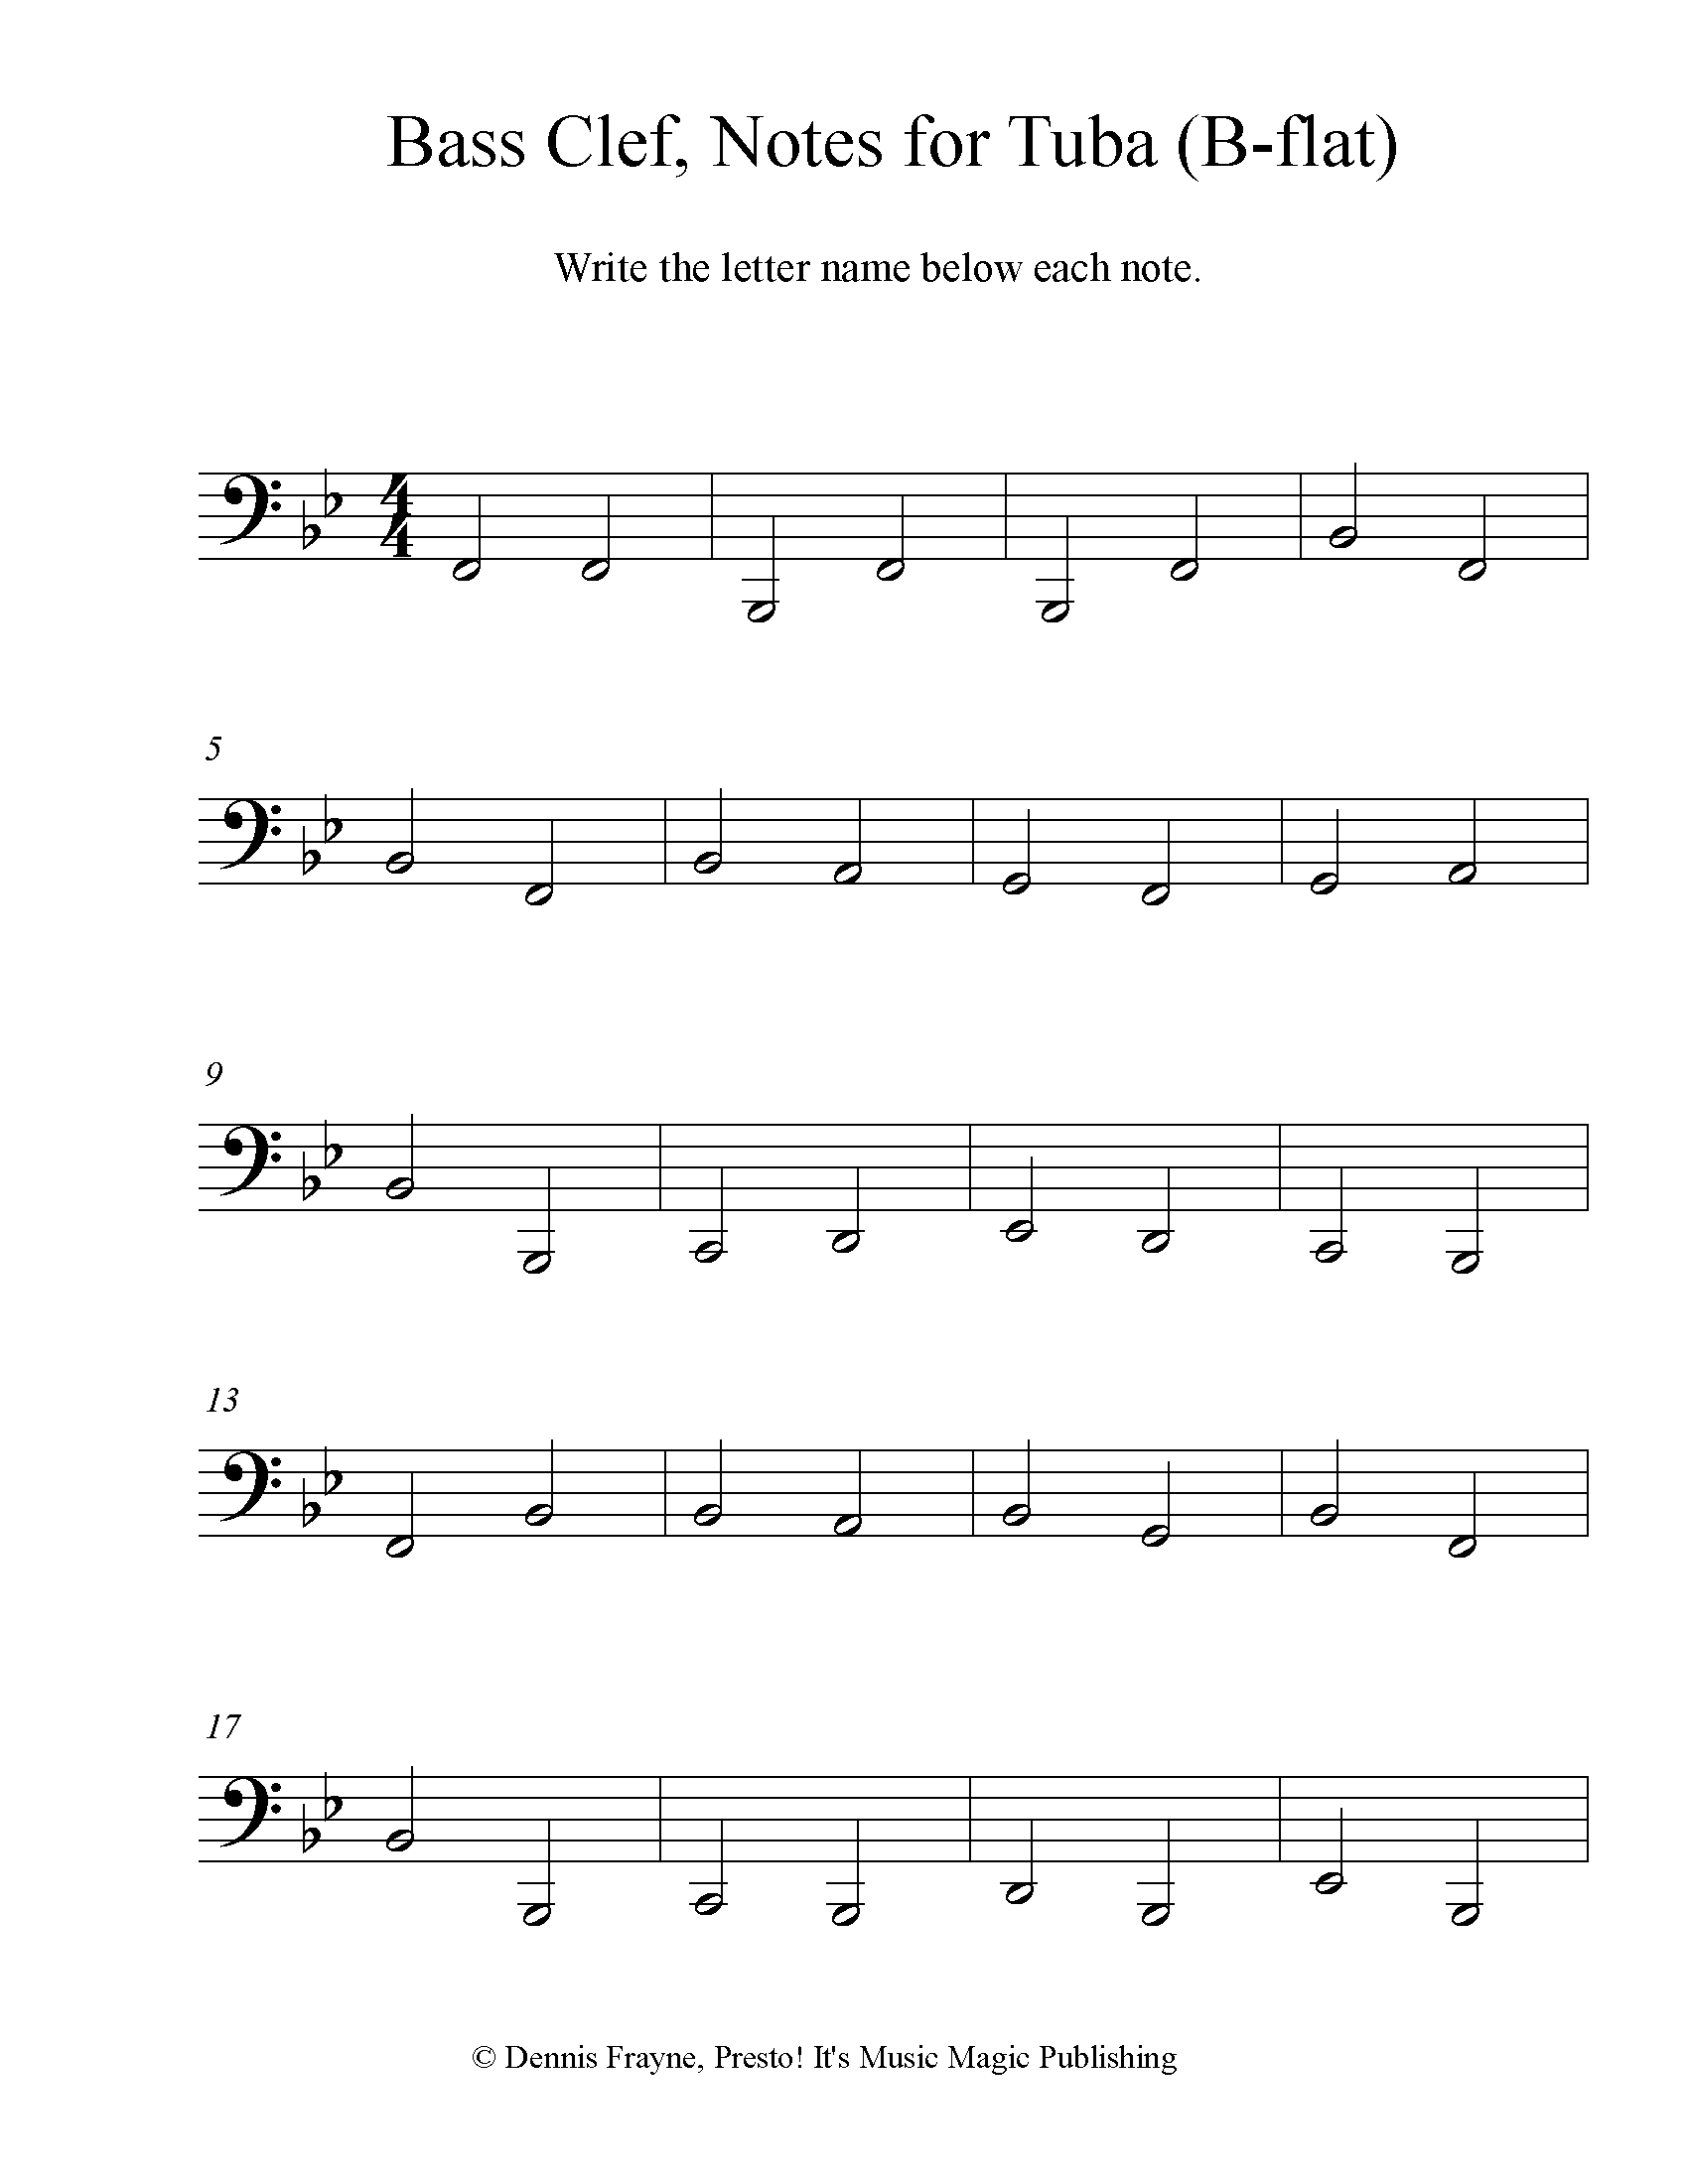 Bass Clef Note Identification for Tuba (B-flat) 4 pages